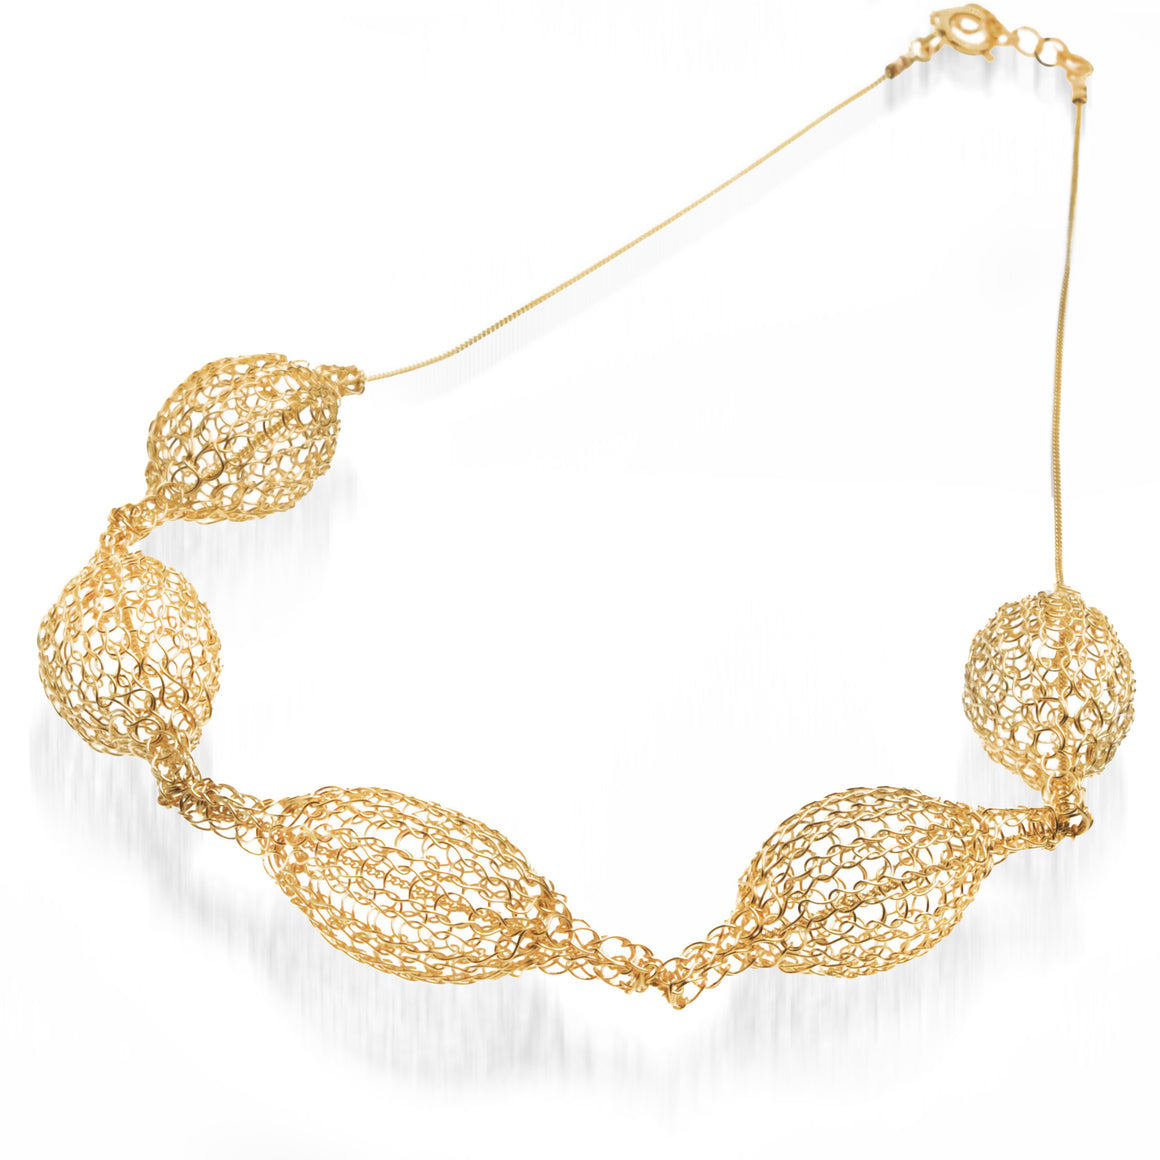 5 Crocheted gold filled organic pod necklace , unique handmade wire crochet jewelry - Yooladesign